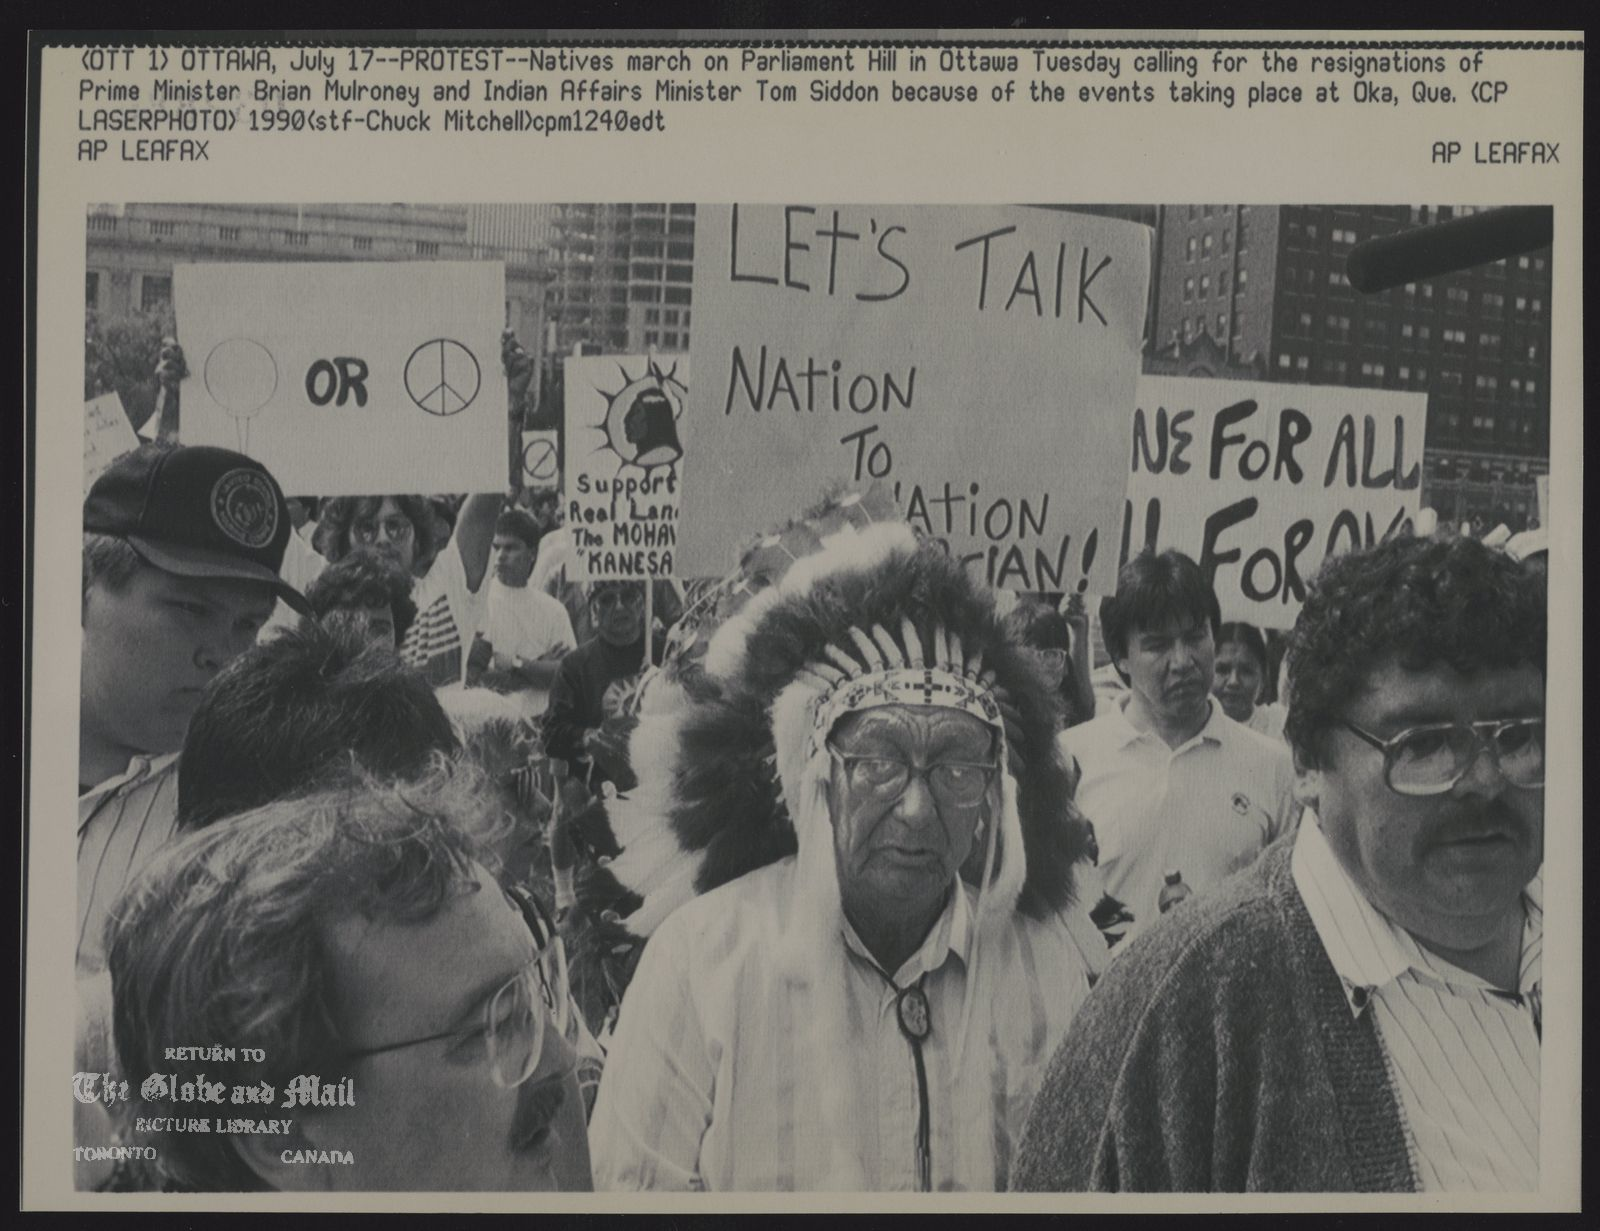 INDIANS CANADA (OTT 1) OTTAWA, July 17--PROTEST-Natives march on Parliament Hill in Ottawa Tuesday calling for the resignations of Prime Minister Brian Mulroney and Indian Affairs Minister Tom Siddon because of the events taking place at Oka, Que. (CP Laserphoto) 1990 (stf-Chuck Mitchell)cpm124edt